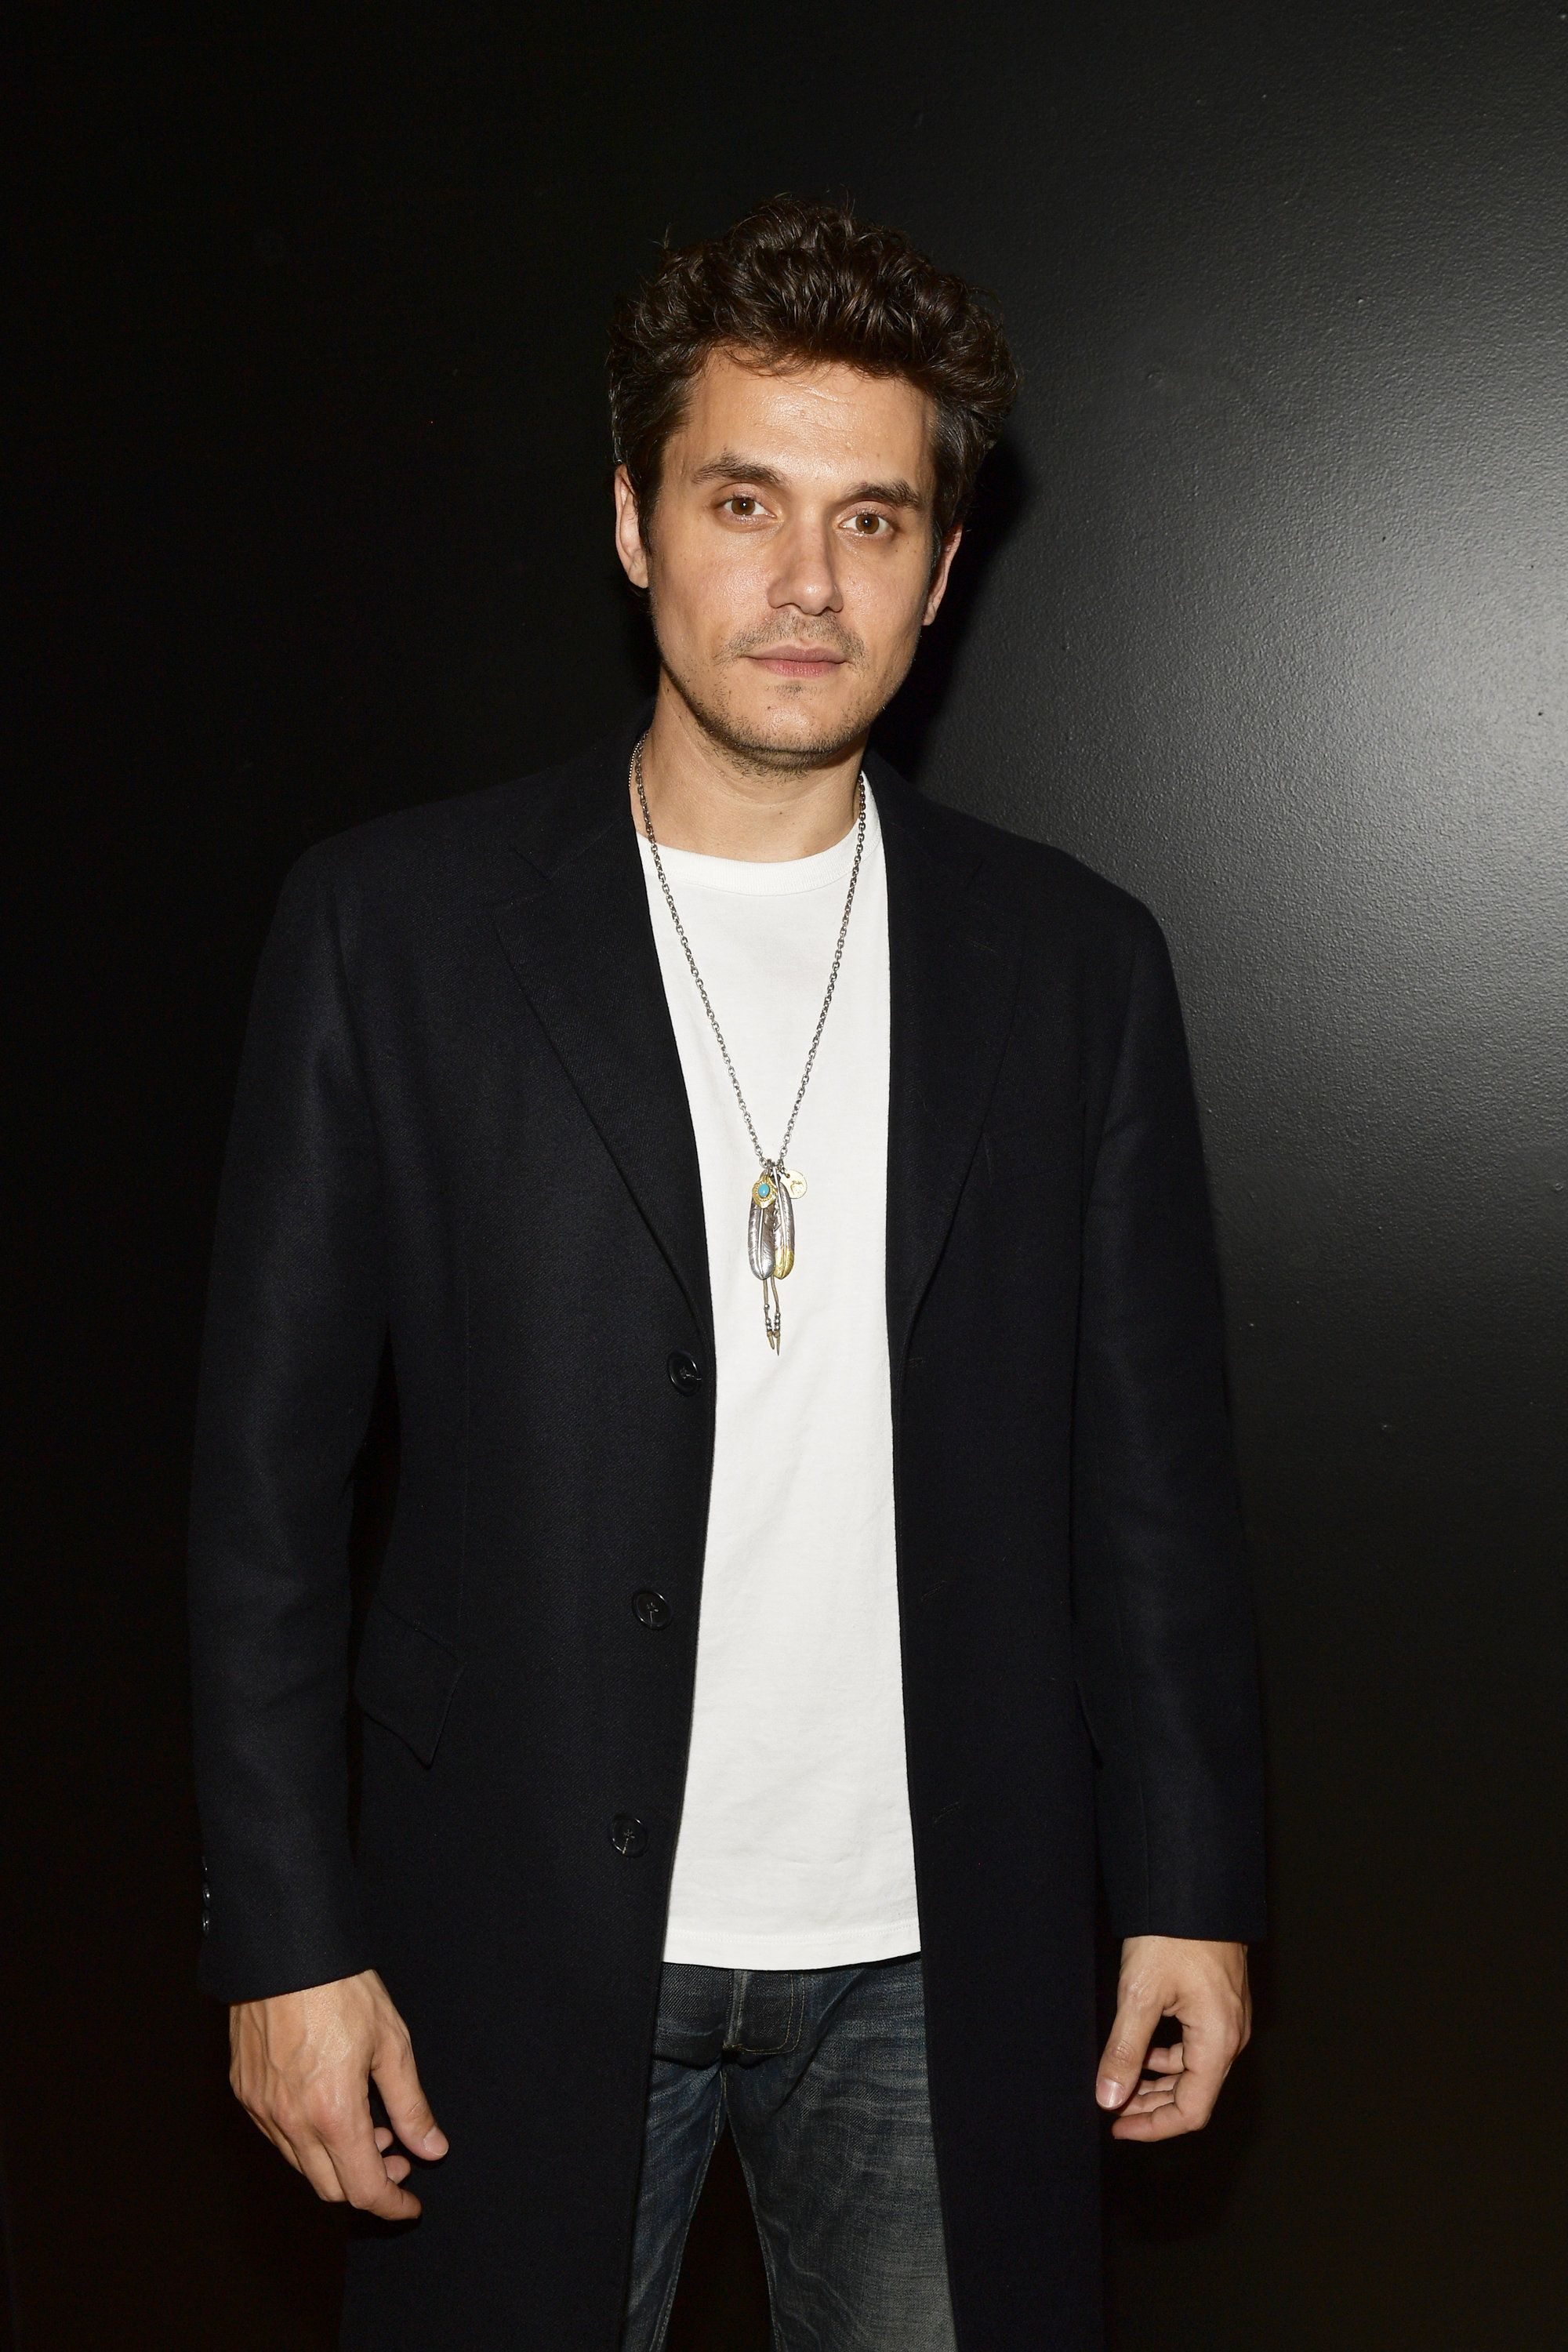 HOLLYWOOD, CA - APRIL 04:  John Mayer attends the 18th Annual International Beverly Hills Film Festival Opening Night Gala Premiere of 'Benjamin' at TCL Chinese 6 Theatres on April 4, 2018 in Hollywood, California.  (Photo by Matt Winkelmeyer/Getty Images)